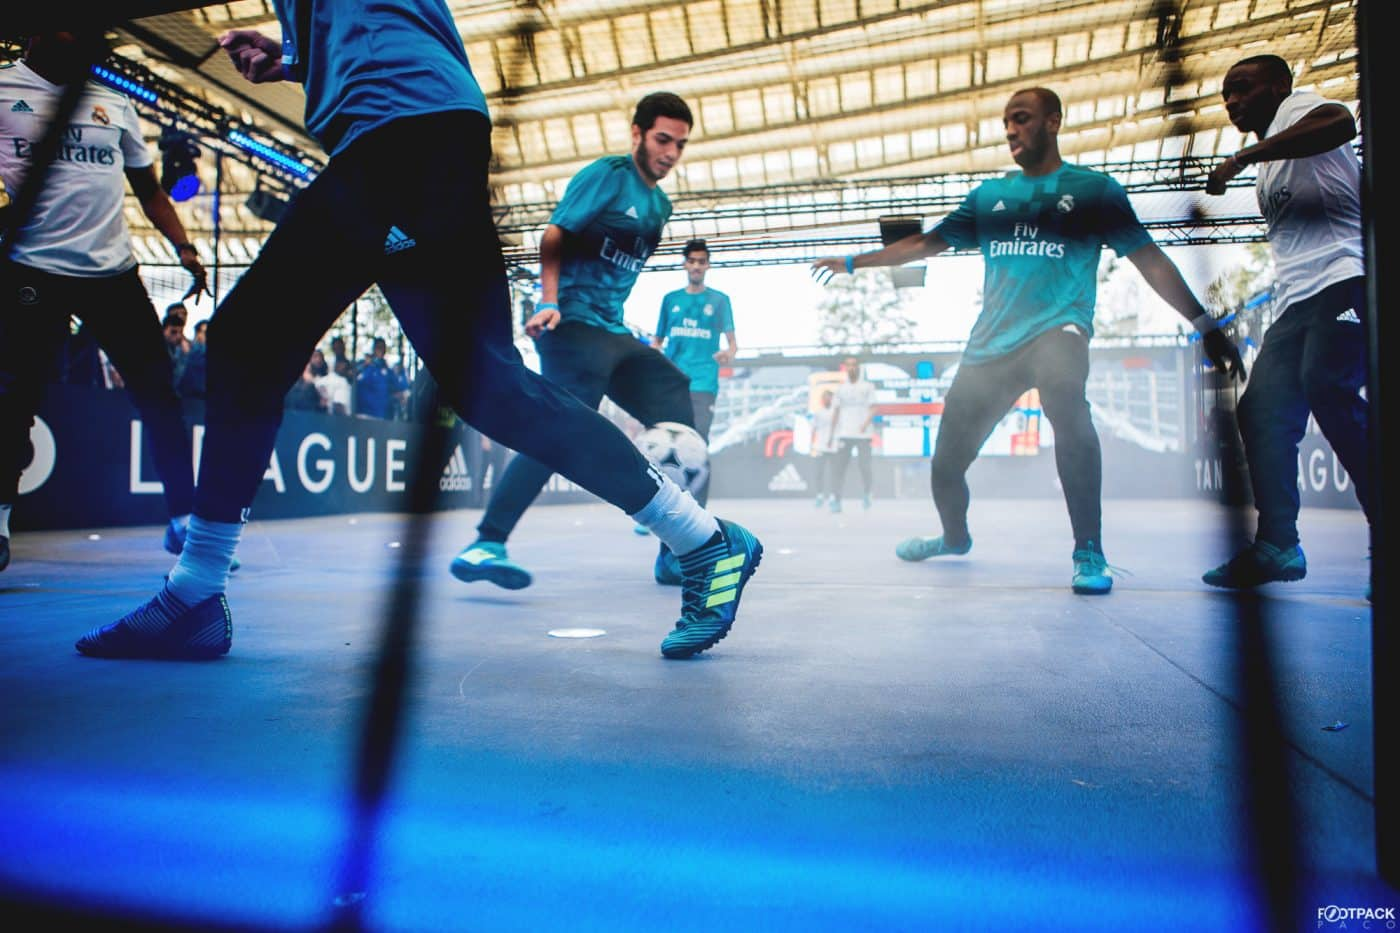 finale-adidas-tango-league-2017-paris-5